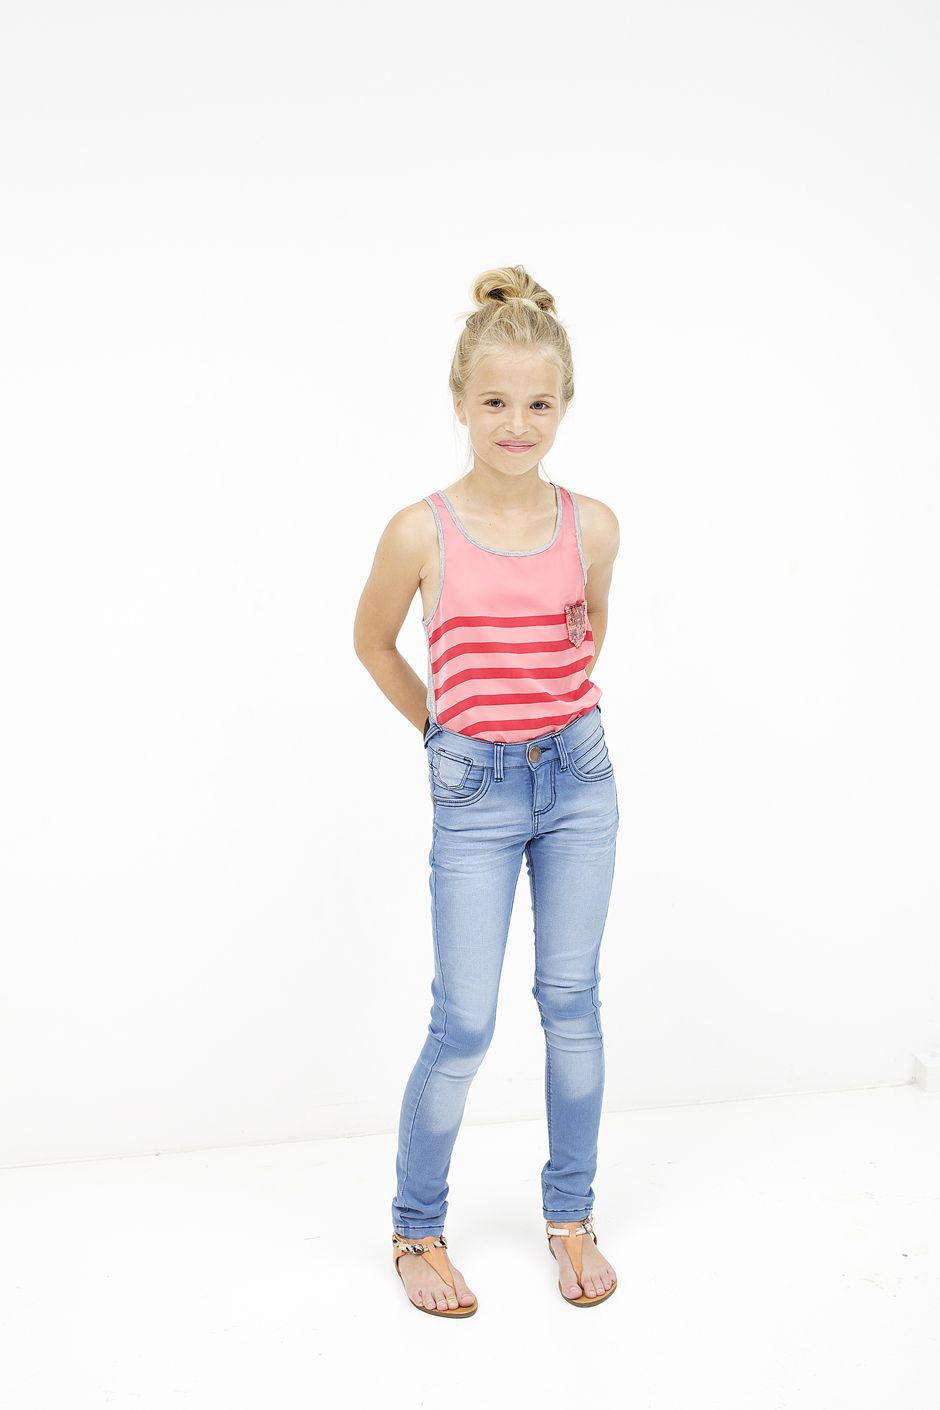 e88da44a129 Tumble 'n Dry l SS14 +++ high waist for girls | Kidsfashion | Kids ...